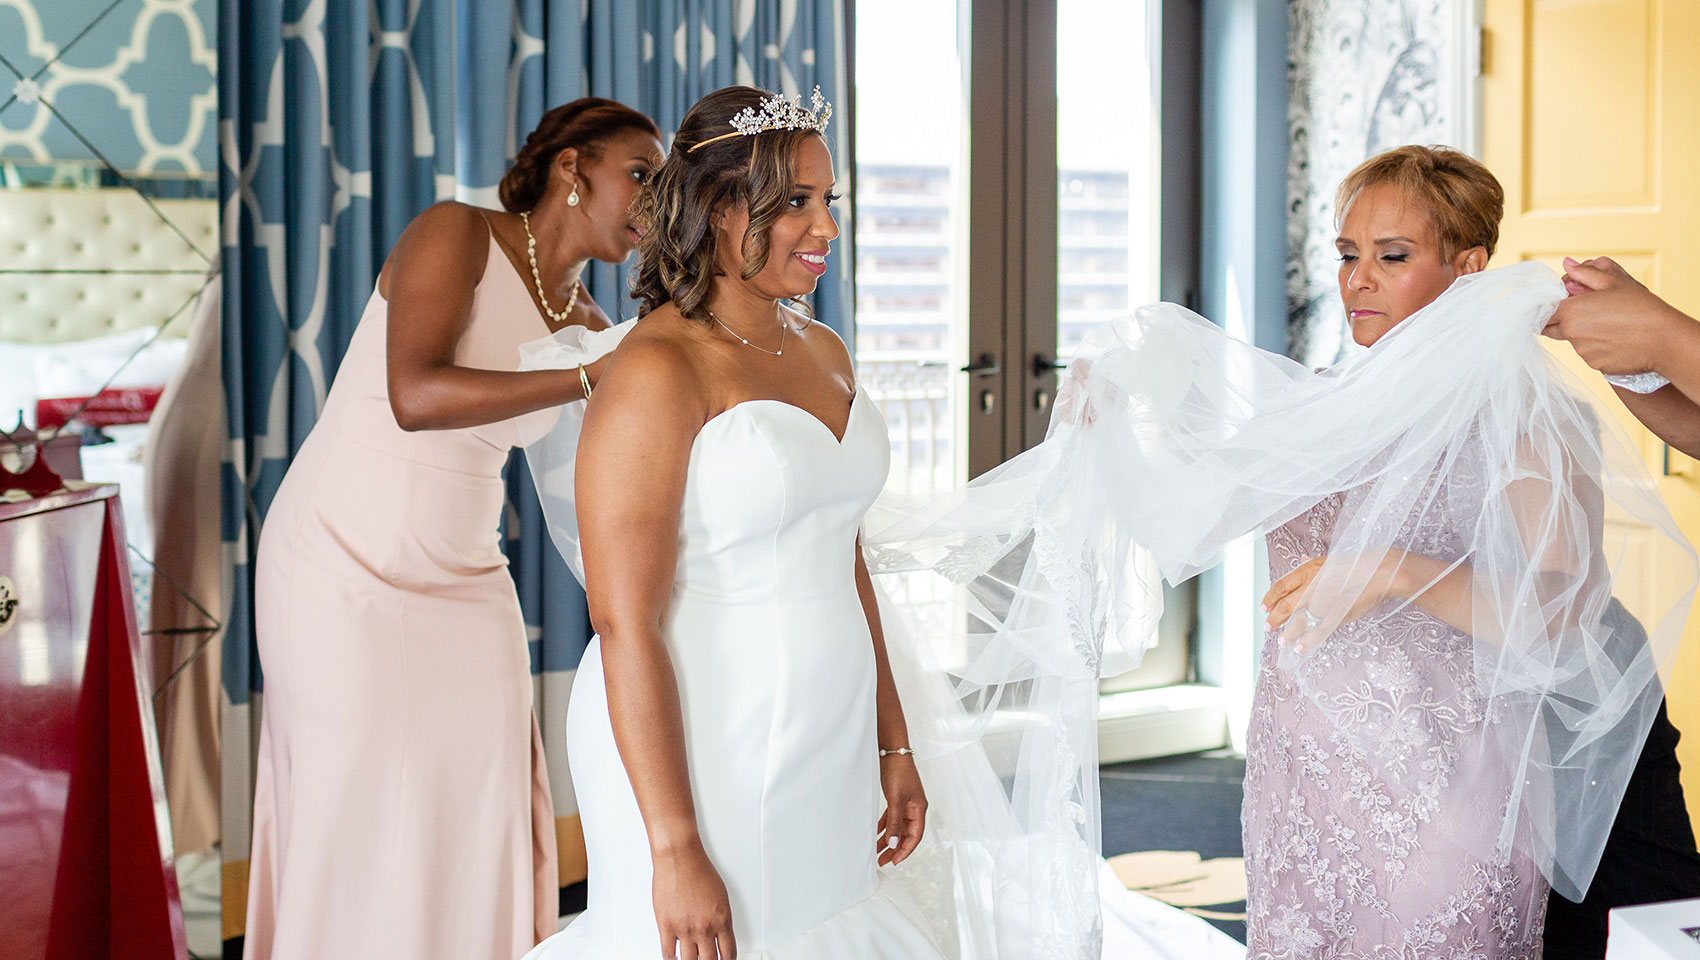 Bride getting ready with the help of other women